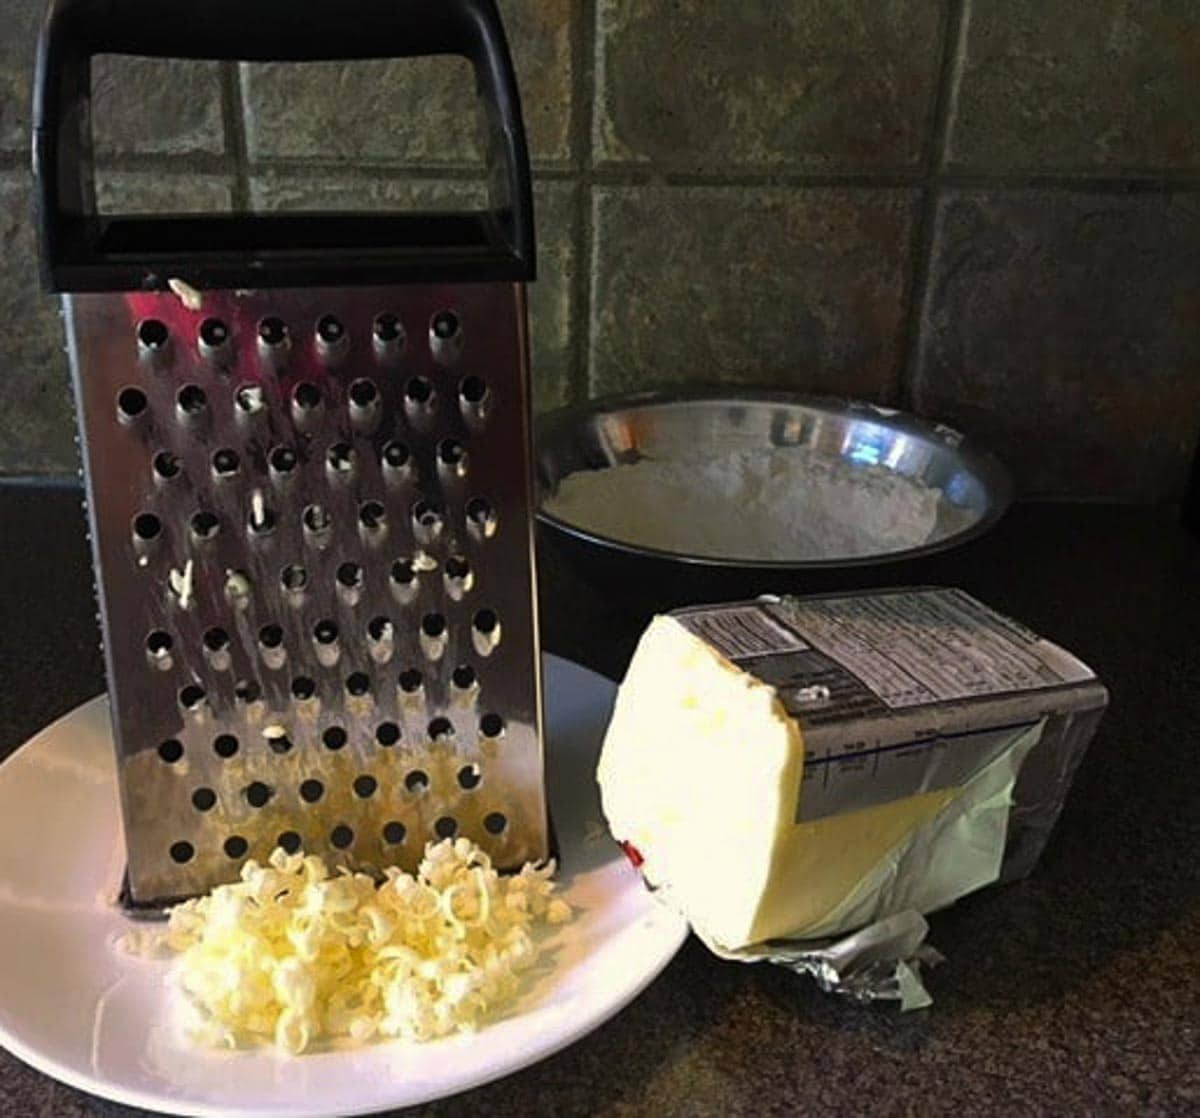 butter being cut (for pastry) with a cheese grater